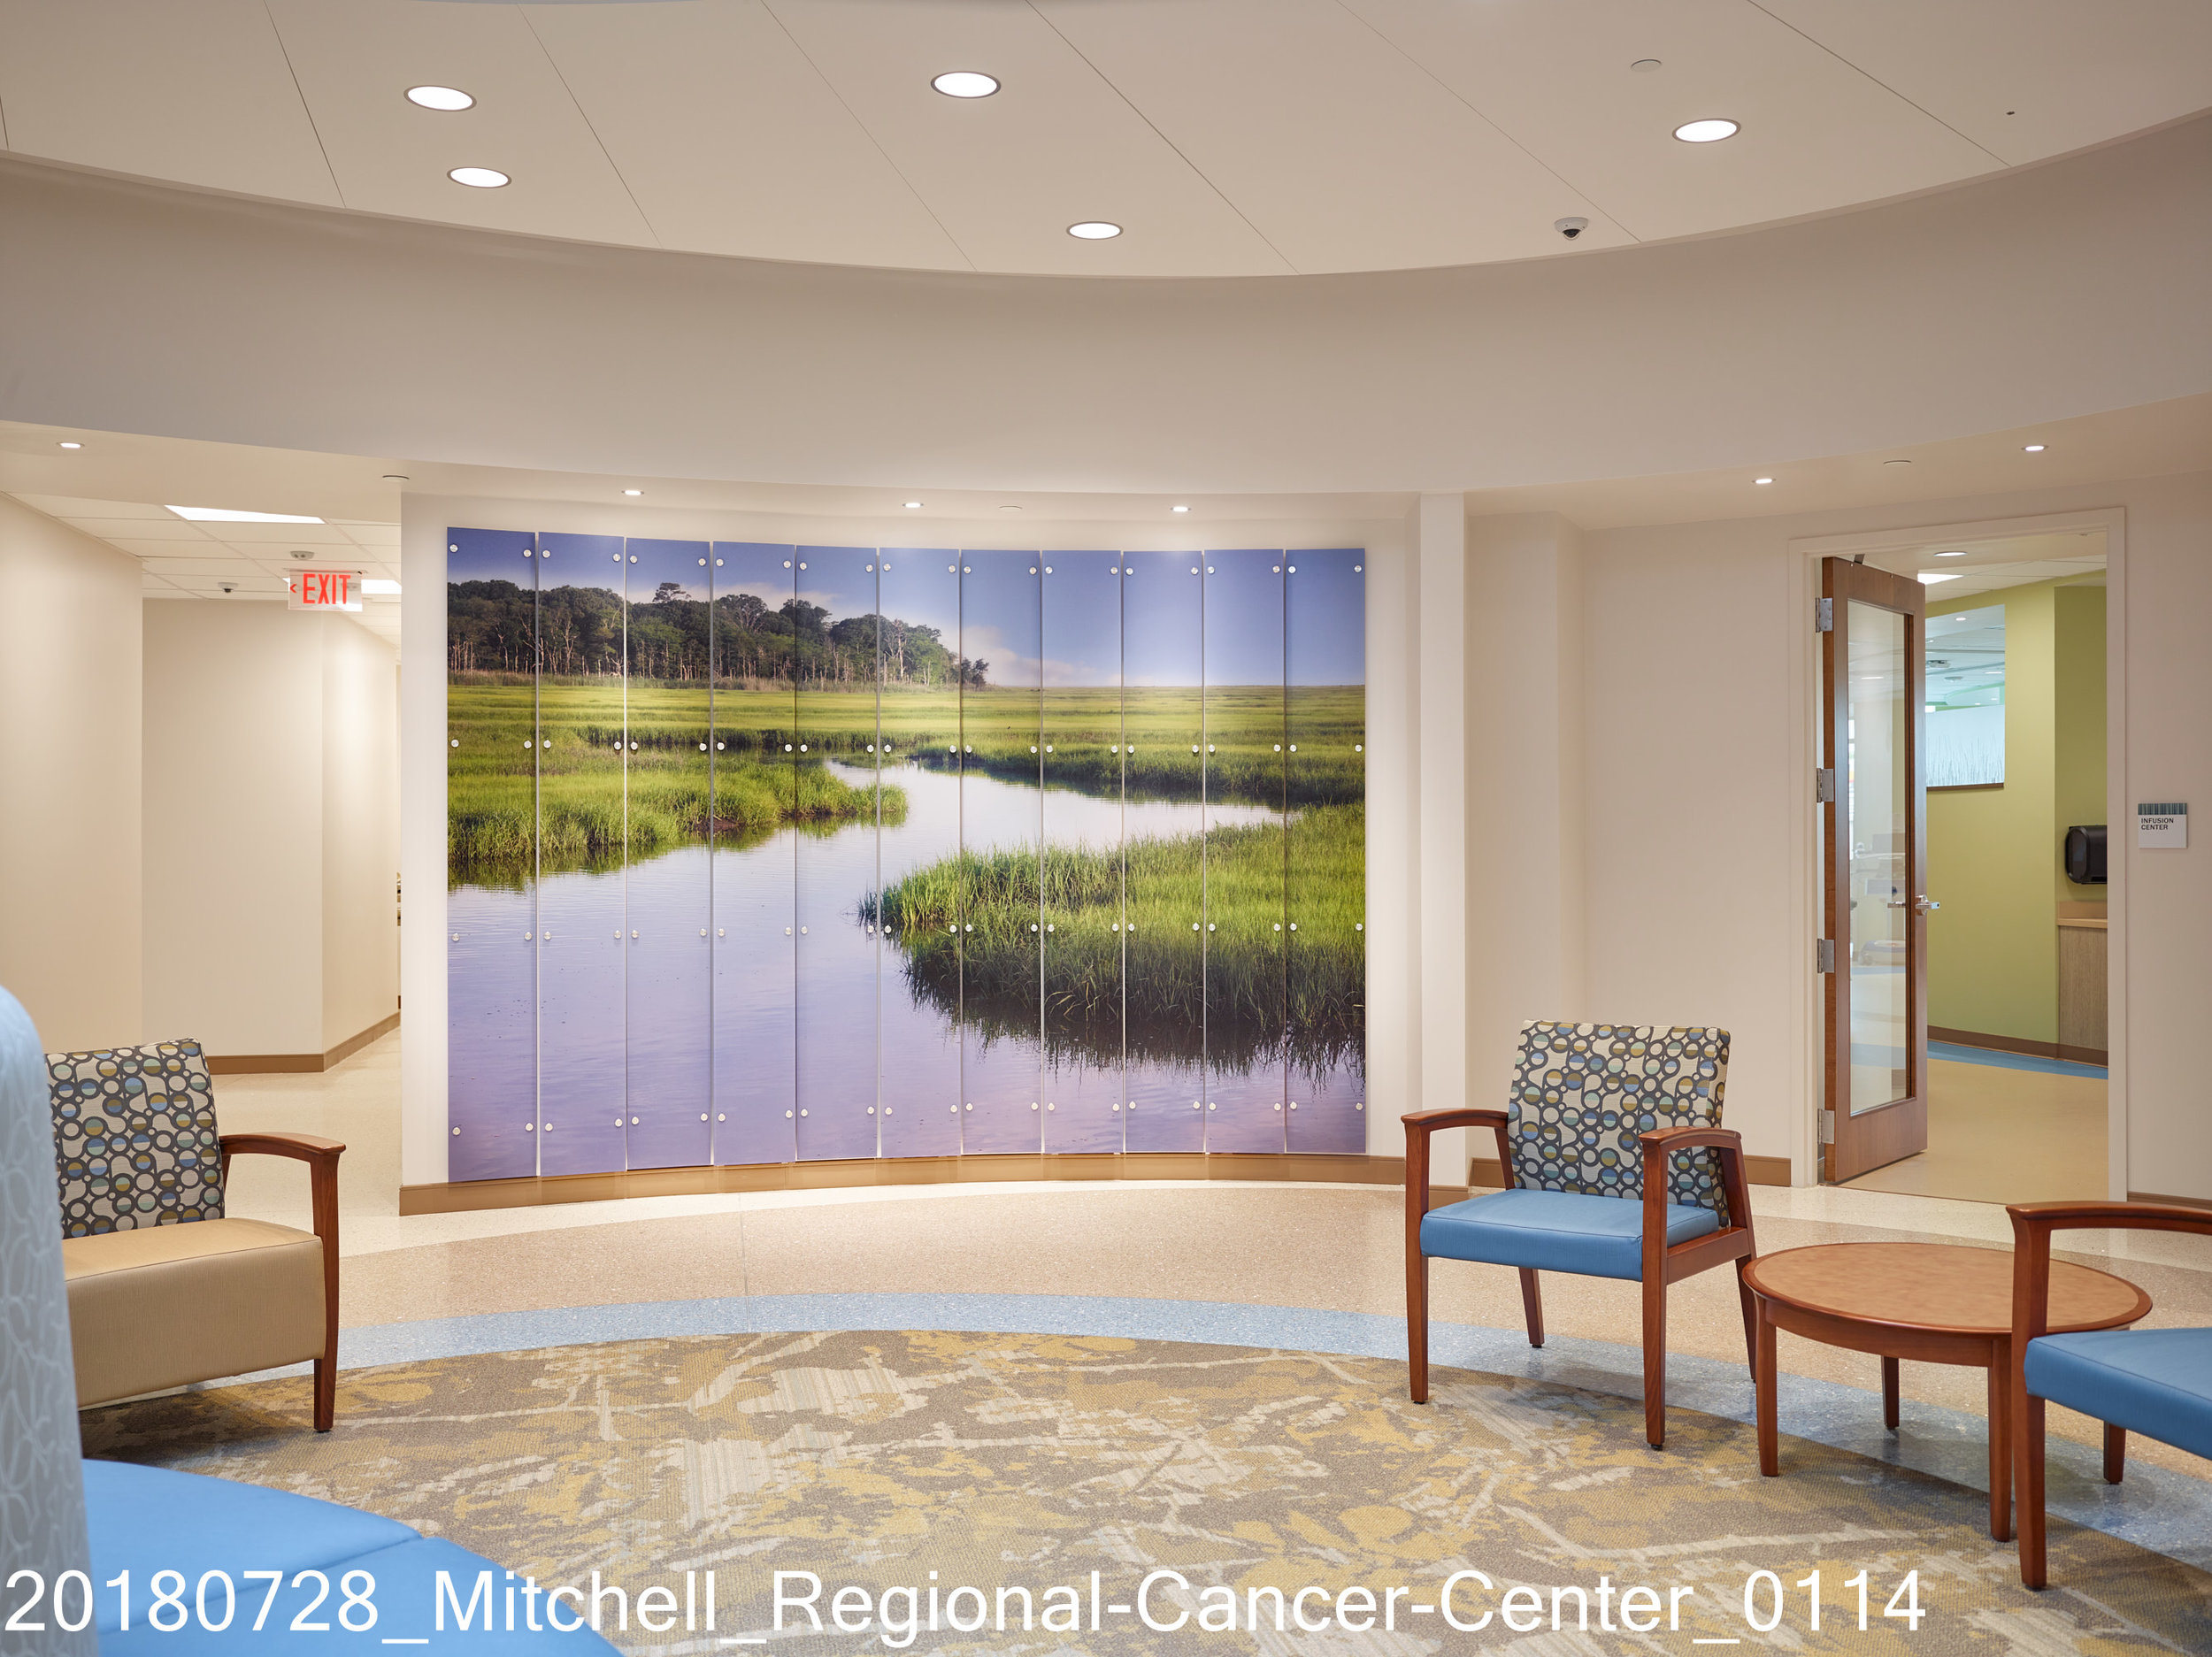 20180728_Mitchell_Regional-Cancer-Center_0114.jpg